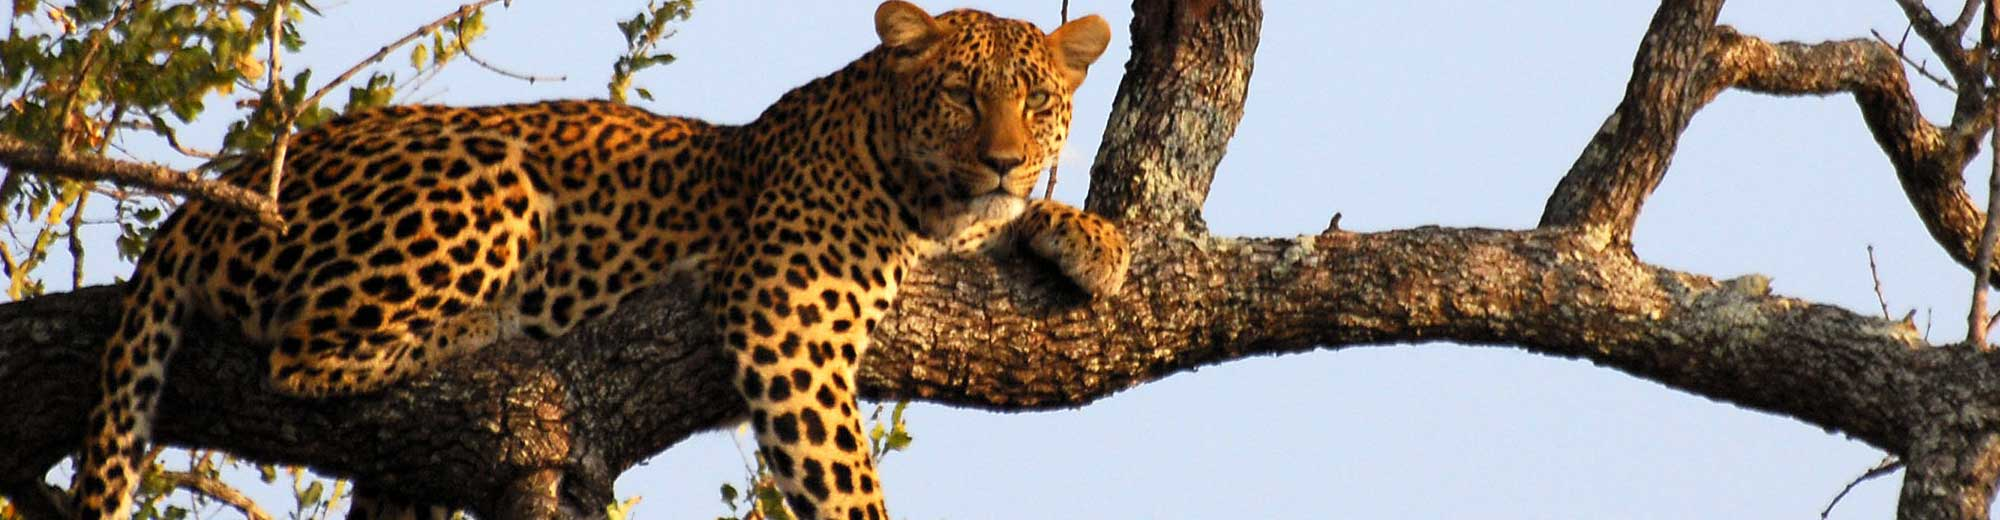 Leopard - one of the big 5